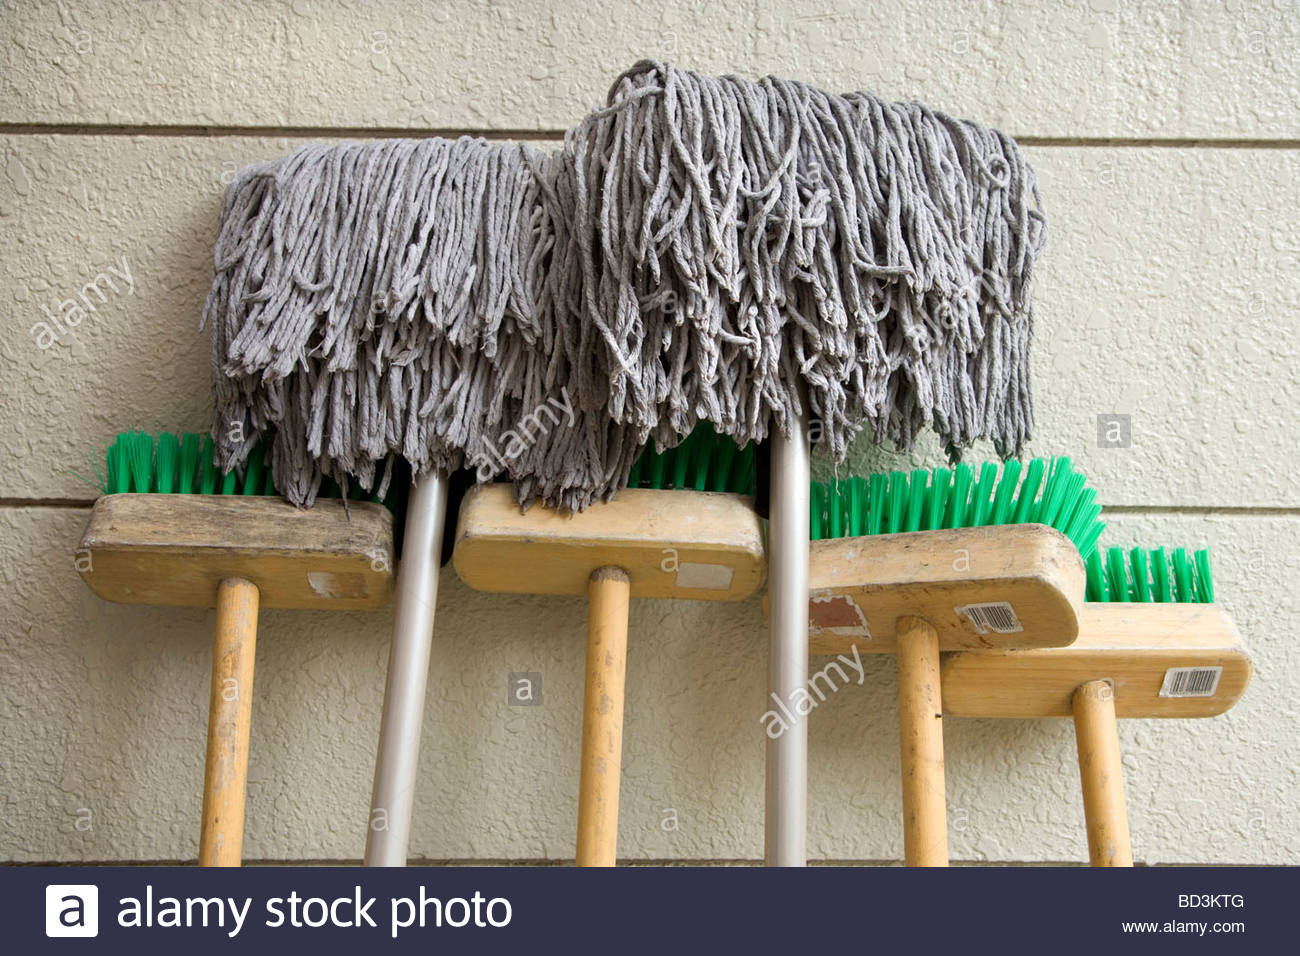 brooms and mops placed against a wall to dry - Stock Image